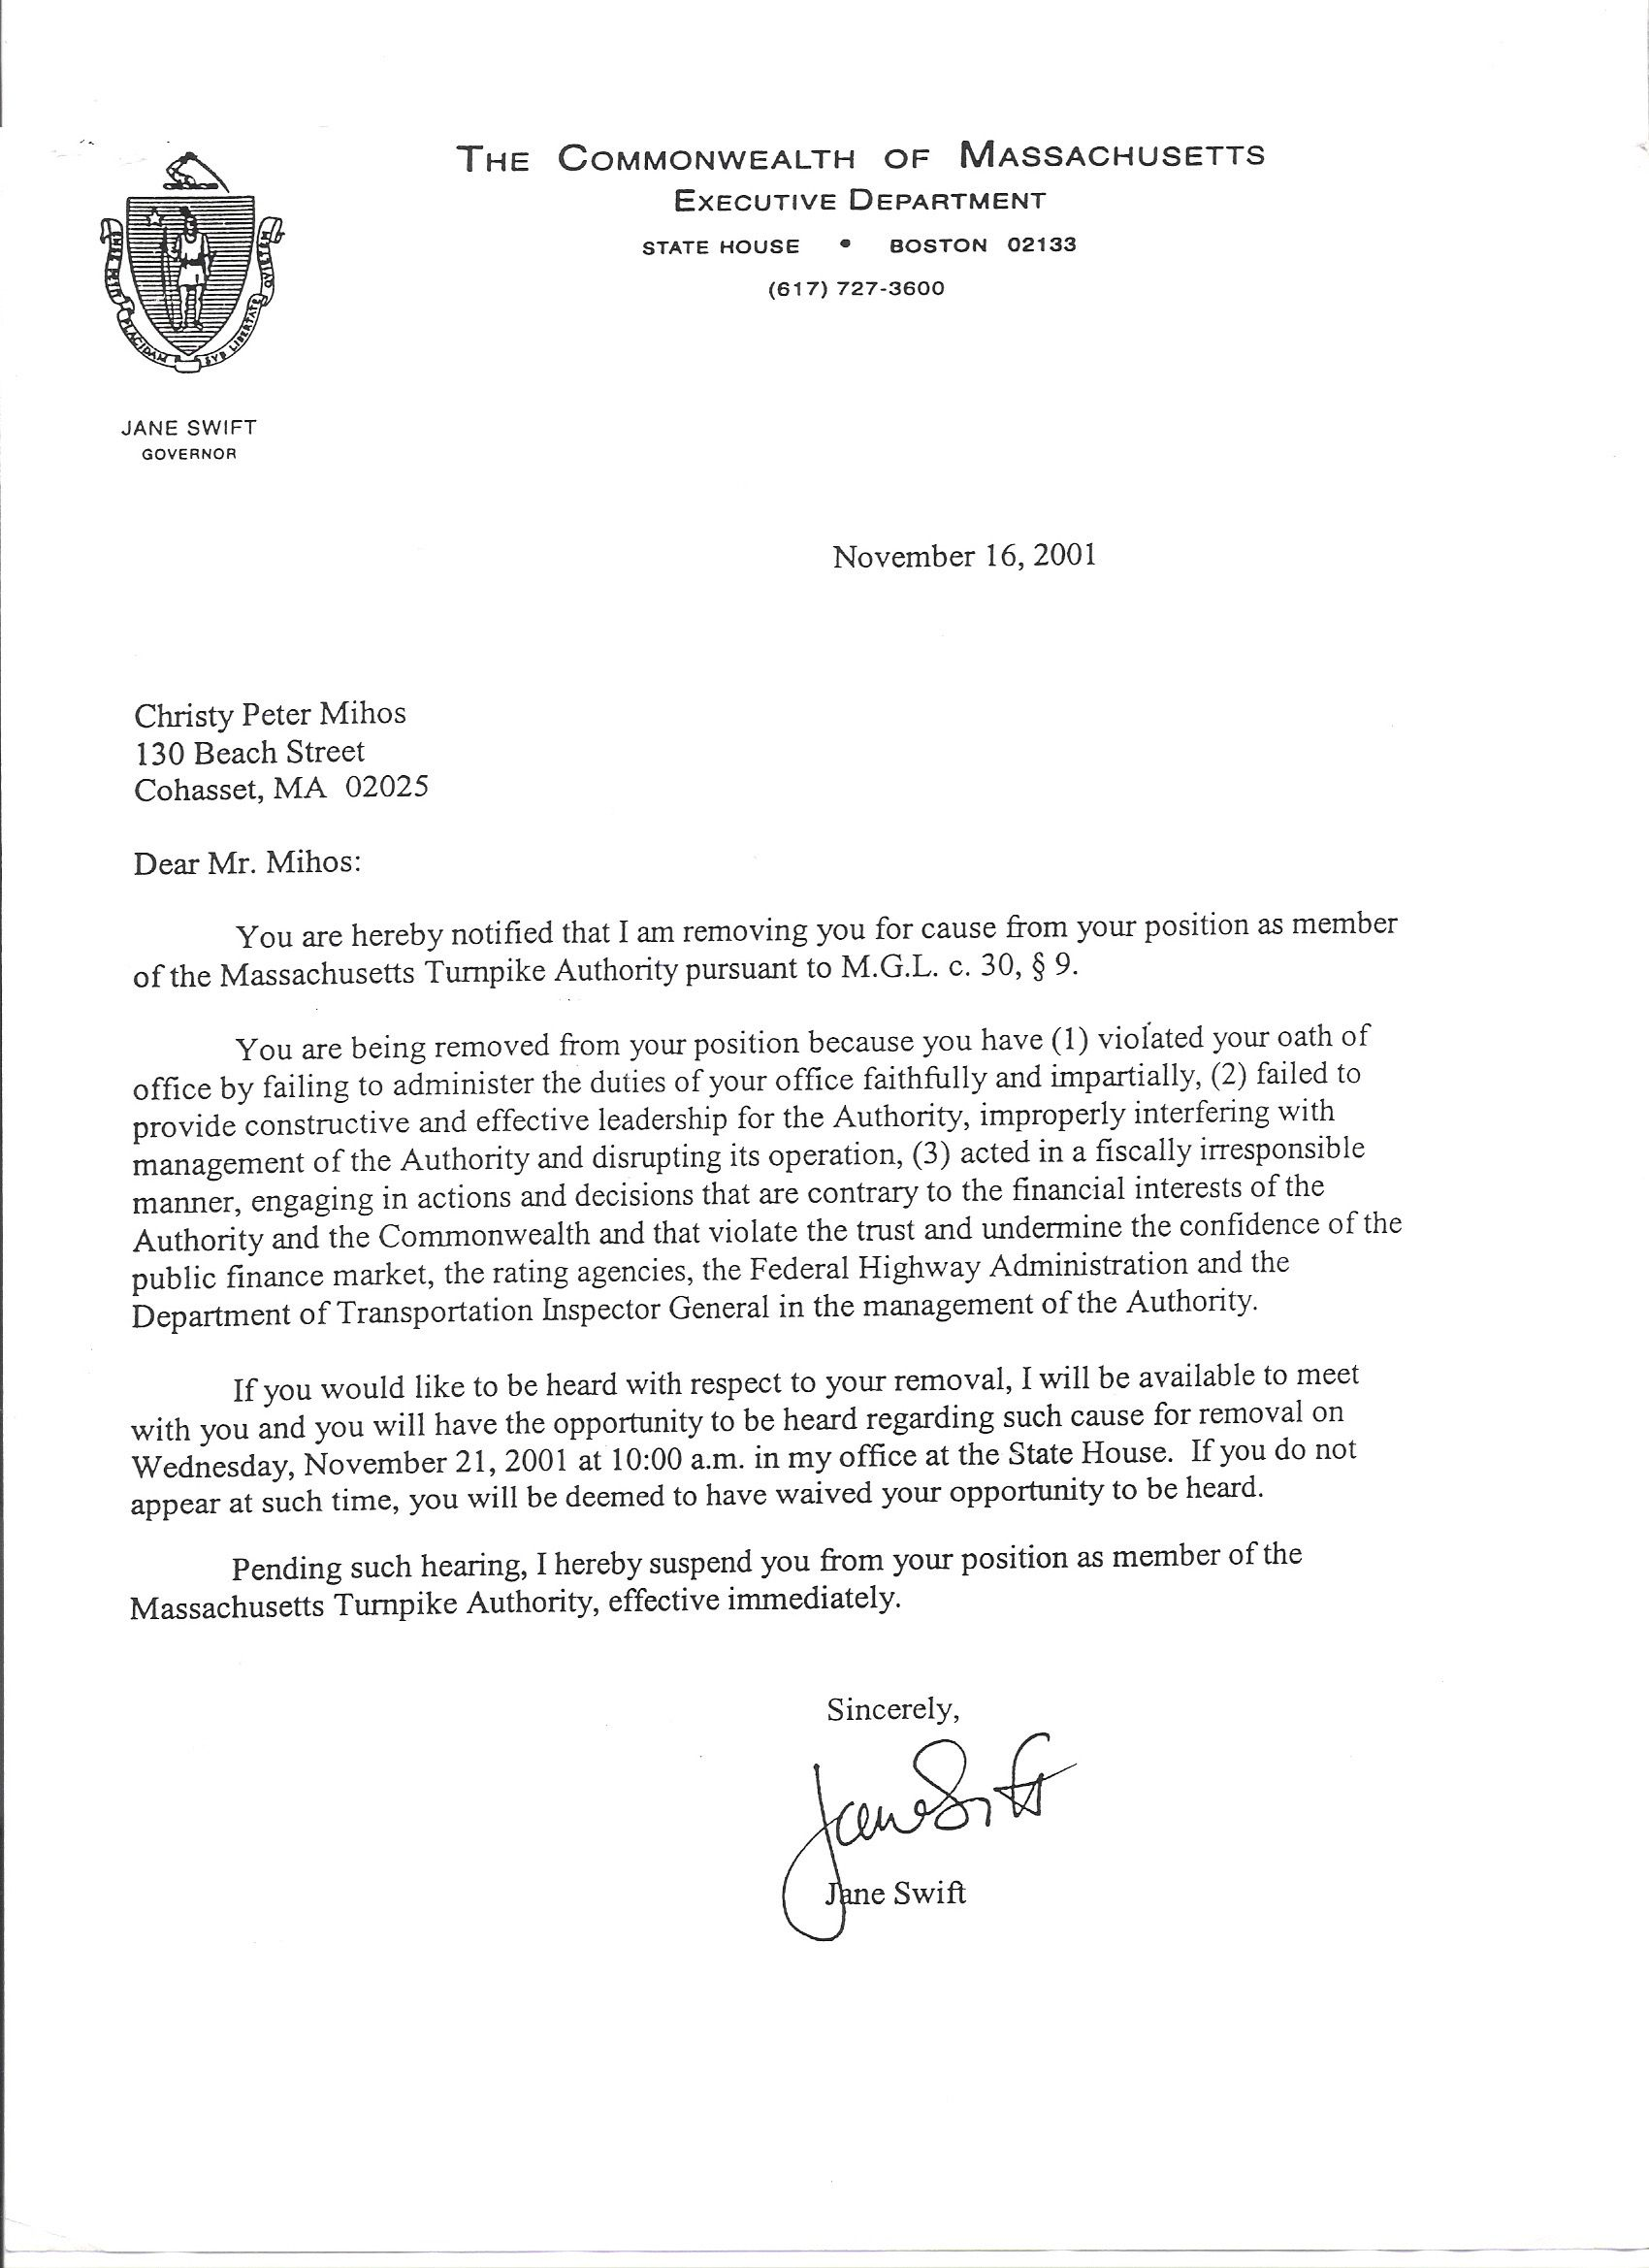 Official Letter Of Removal From Jane Swift Rotten To The Coreofficial Letter  Business Letter Sample